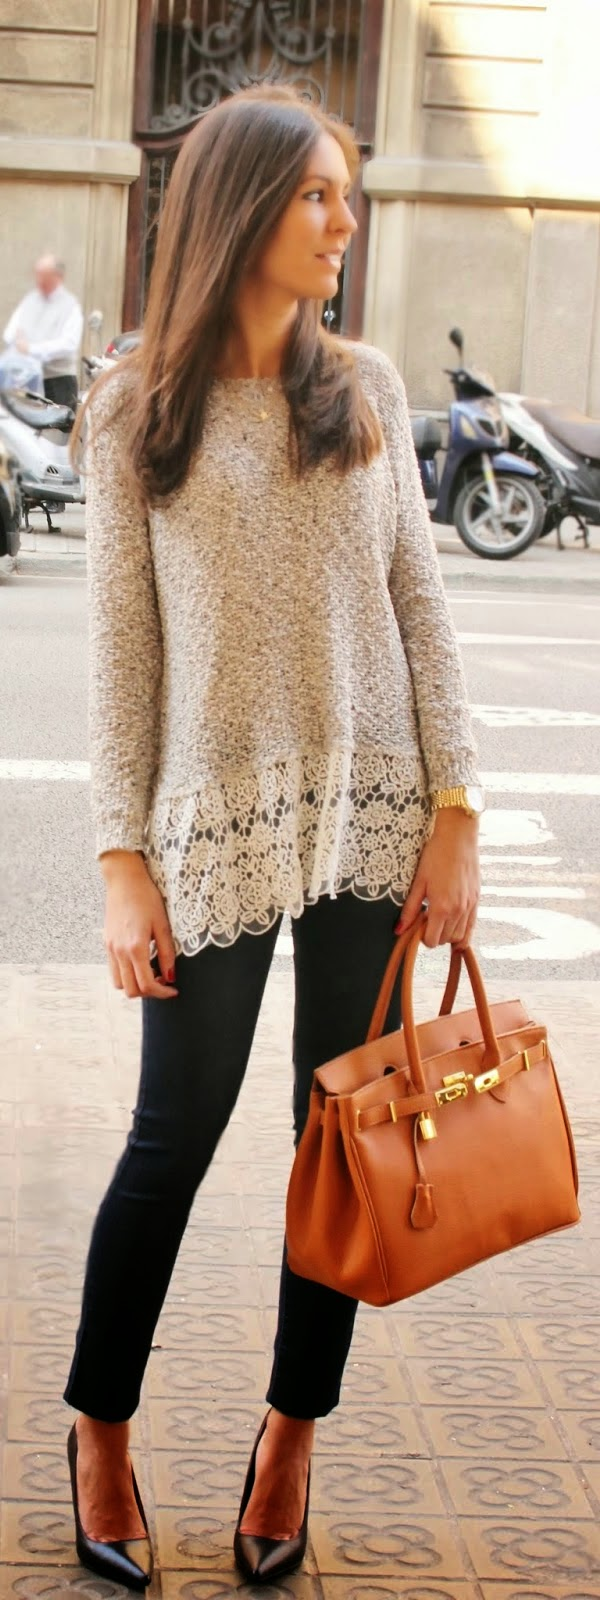 Chic Lace Sweater with Skinnies Jeans and Black Pumps | Spring Outfits